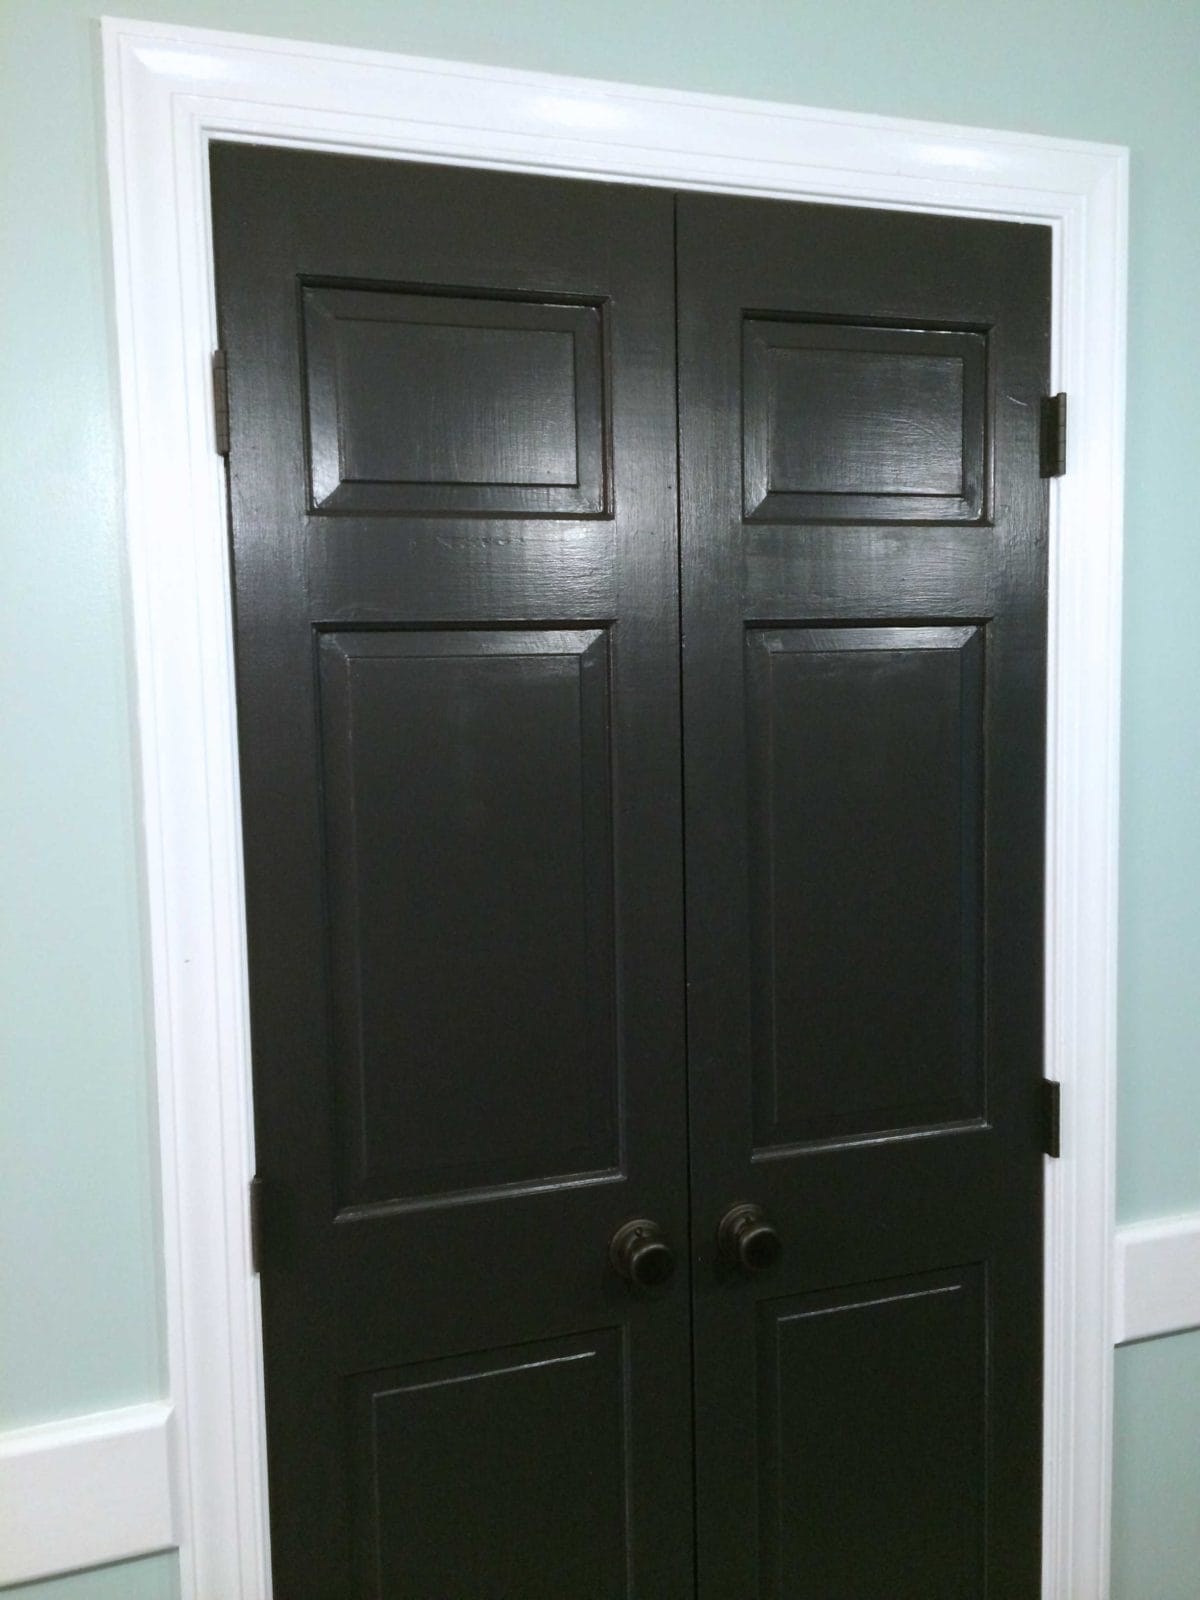 Oil rubbed bronze door knobs on white door -  Oil Rubbed Bronze Black Doors With White Trim Can Make A Huge Impact Full Details By Designer Trapped